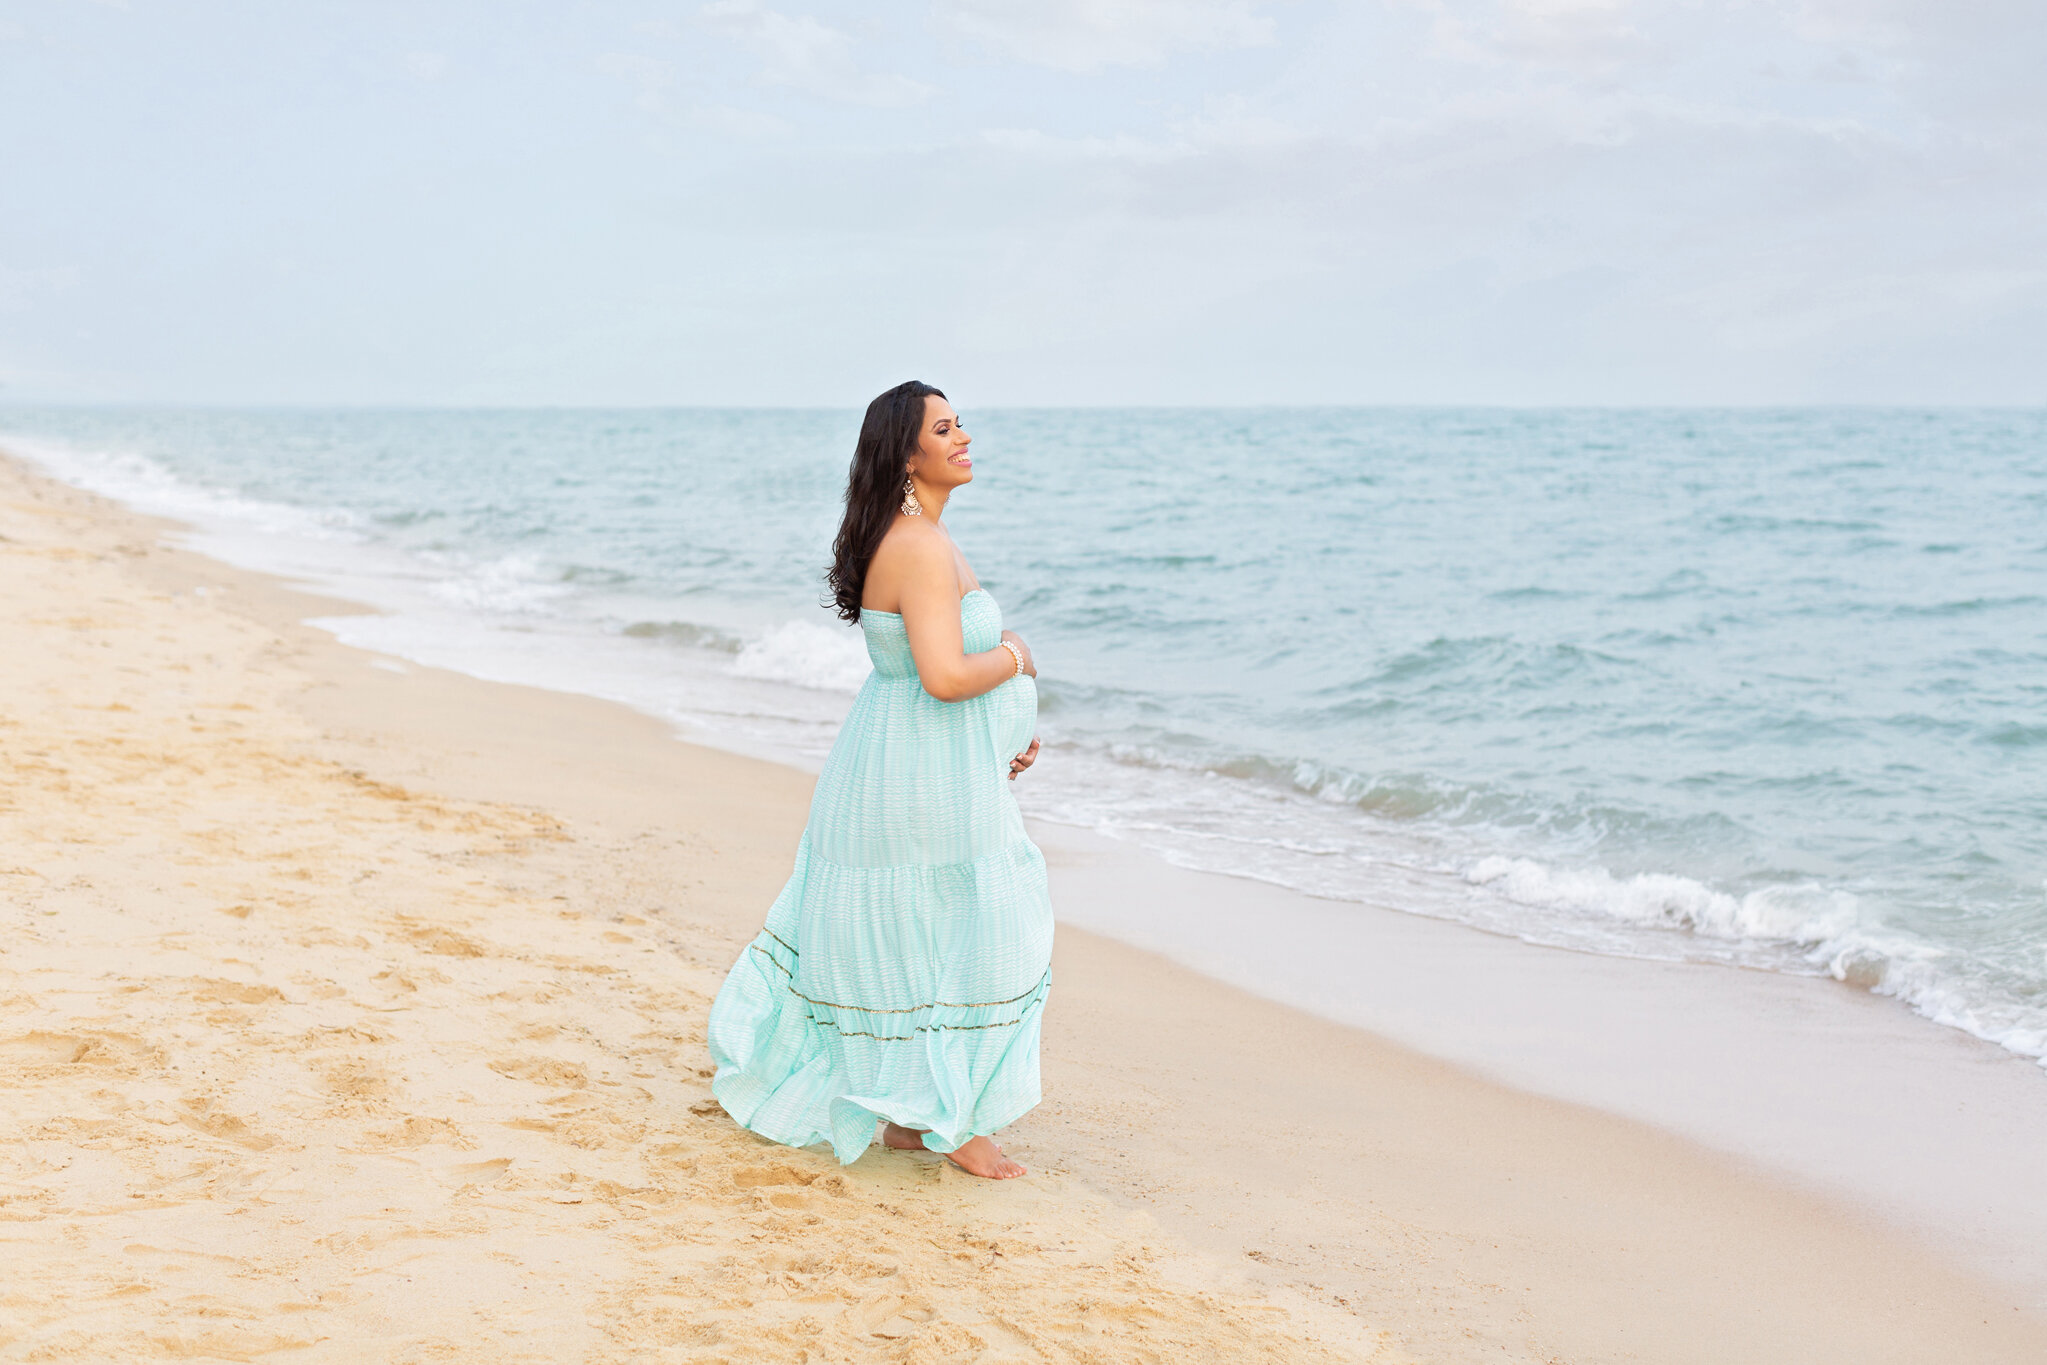 gorgeous outdoor maternity session on east coast beach singapore on a windy afternoon, maternity dress is stunning and woman is laughing and we capture lovely photographs of her growing belly